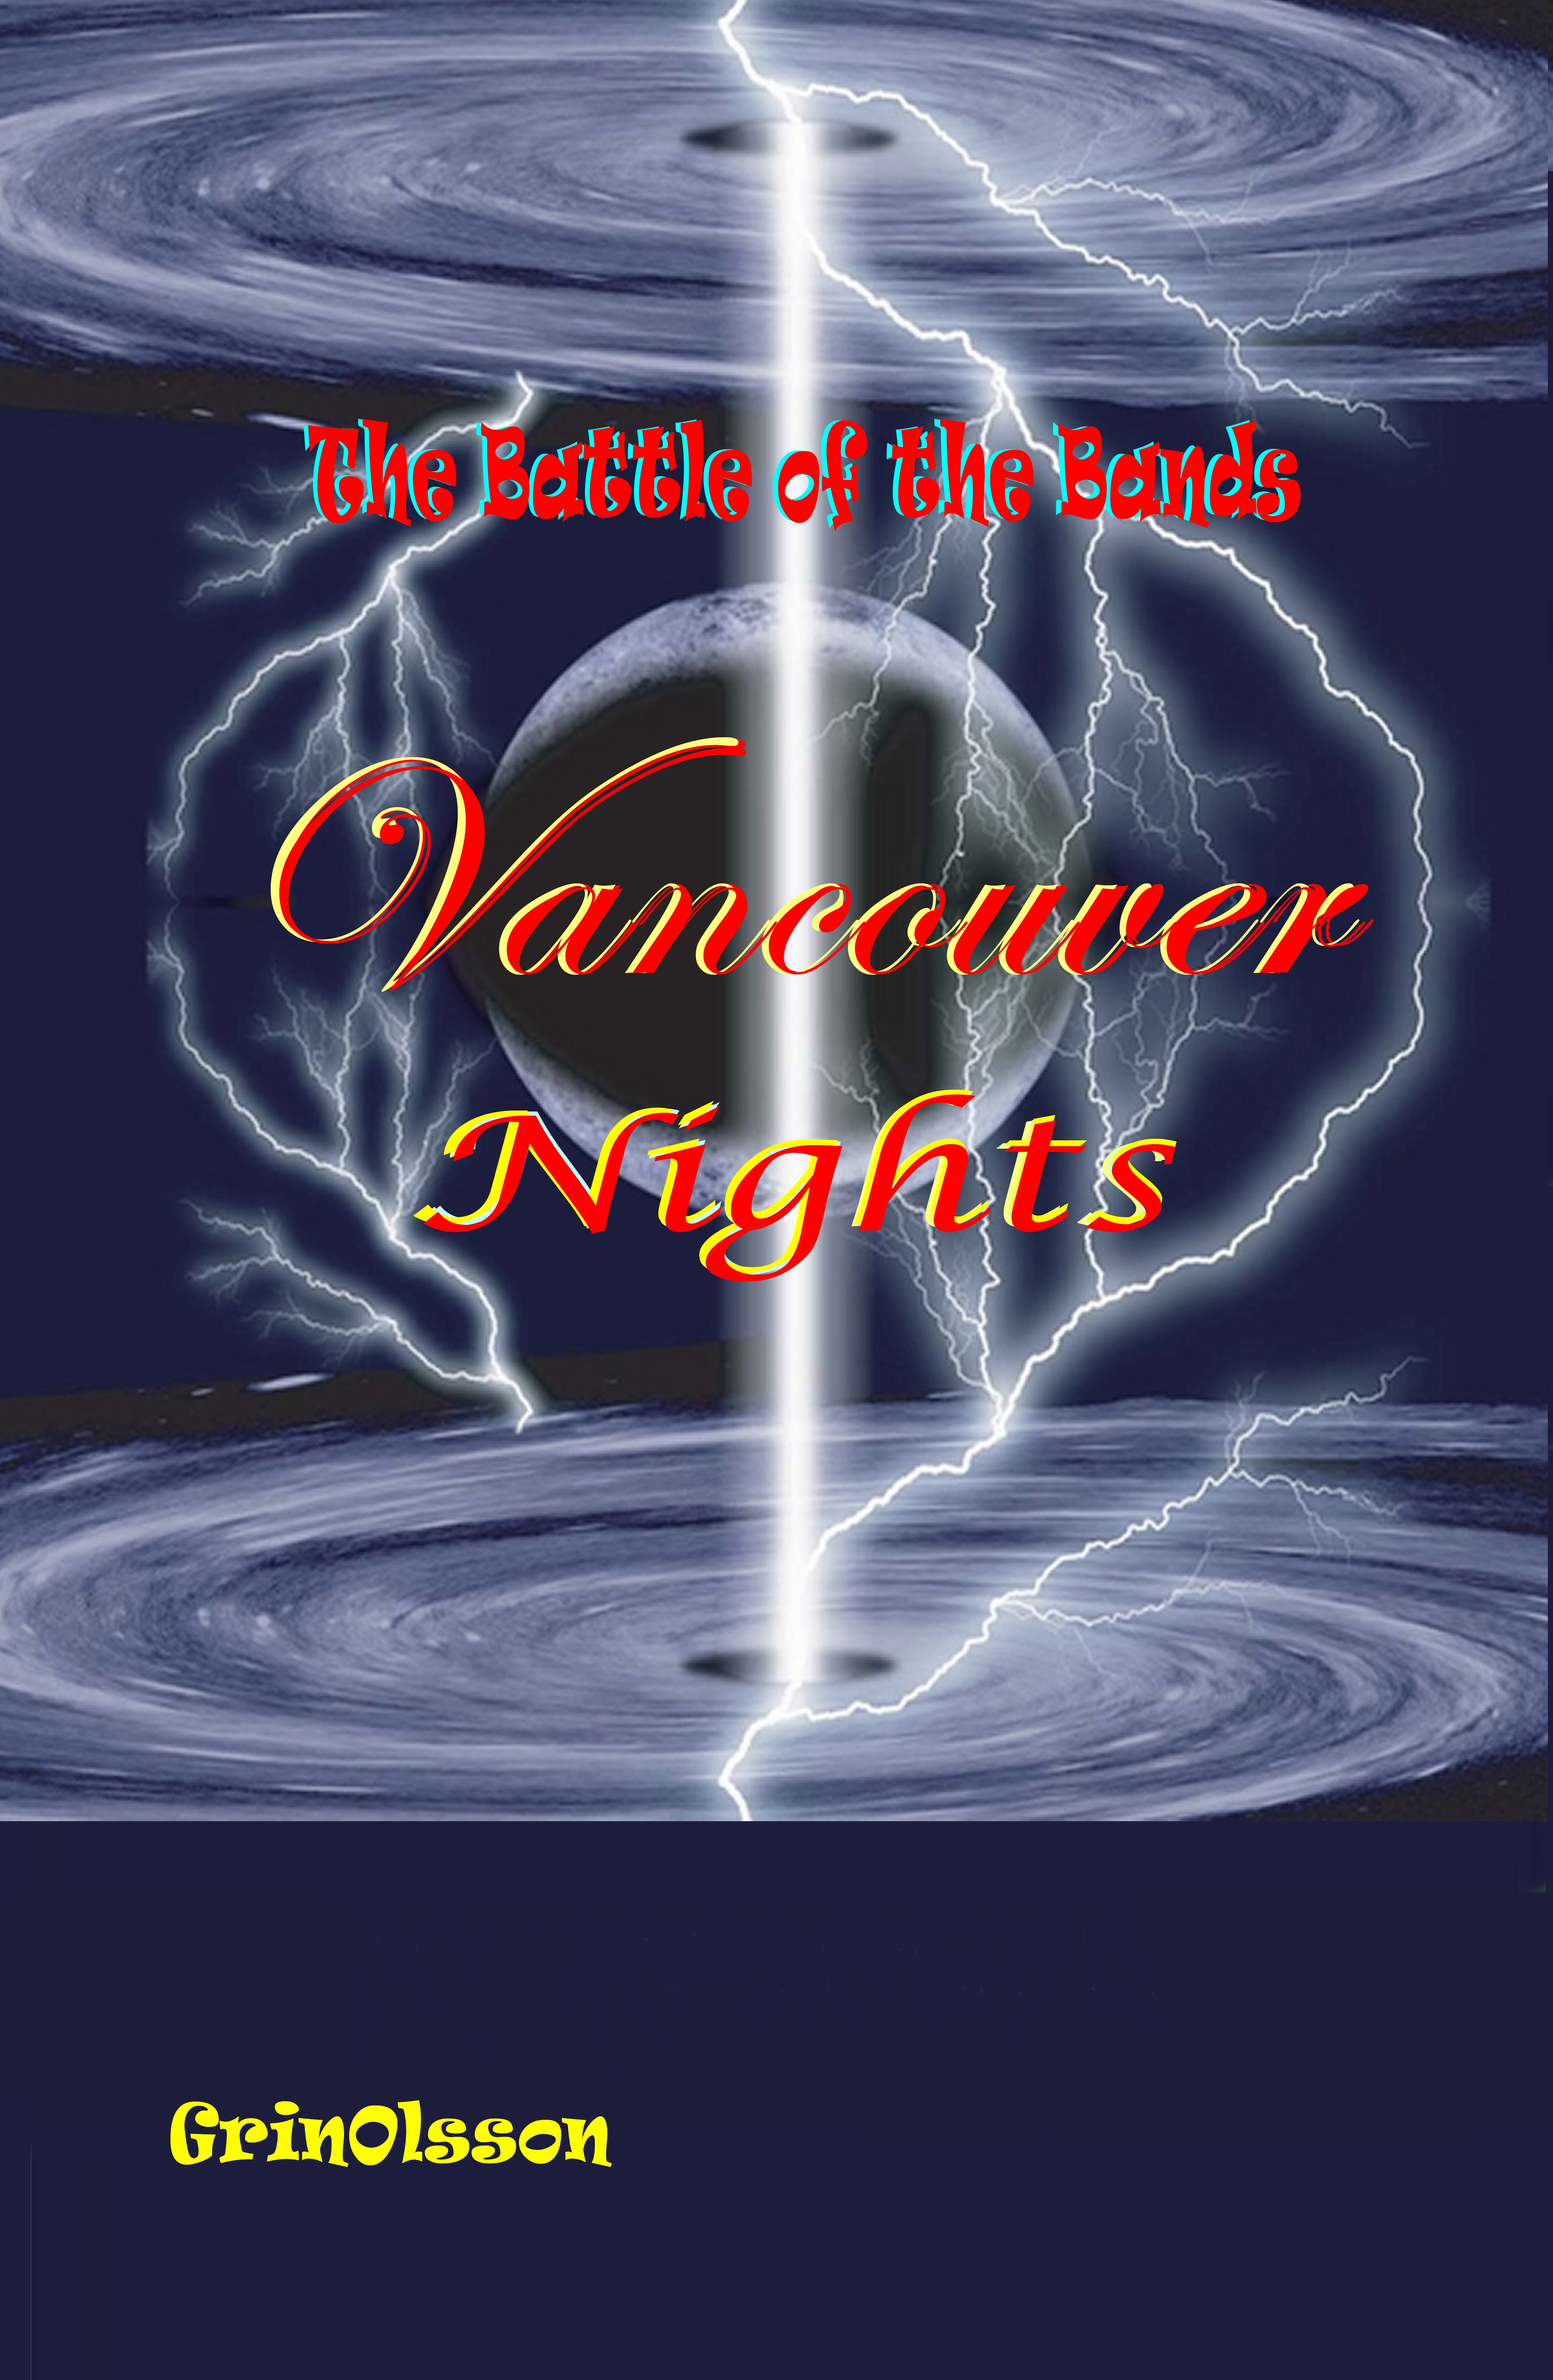 Vancouver_Nights: The Battle of the Bands